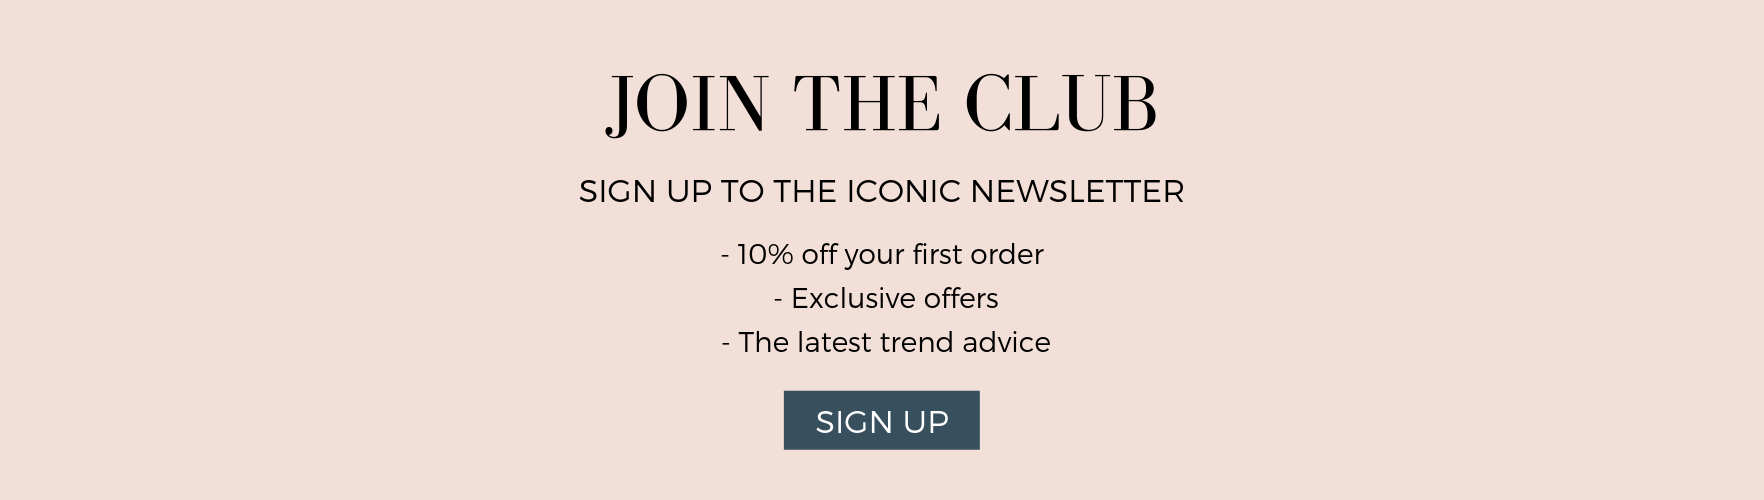 Sign Up Banner 10% Off First Order